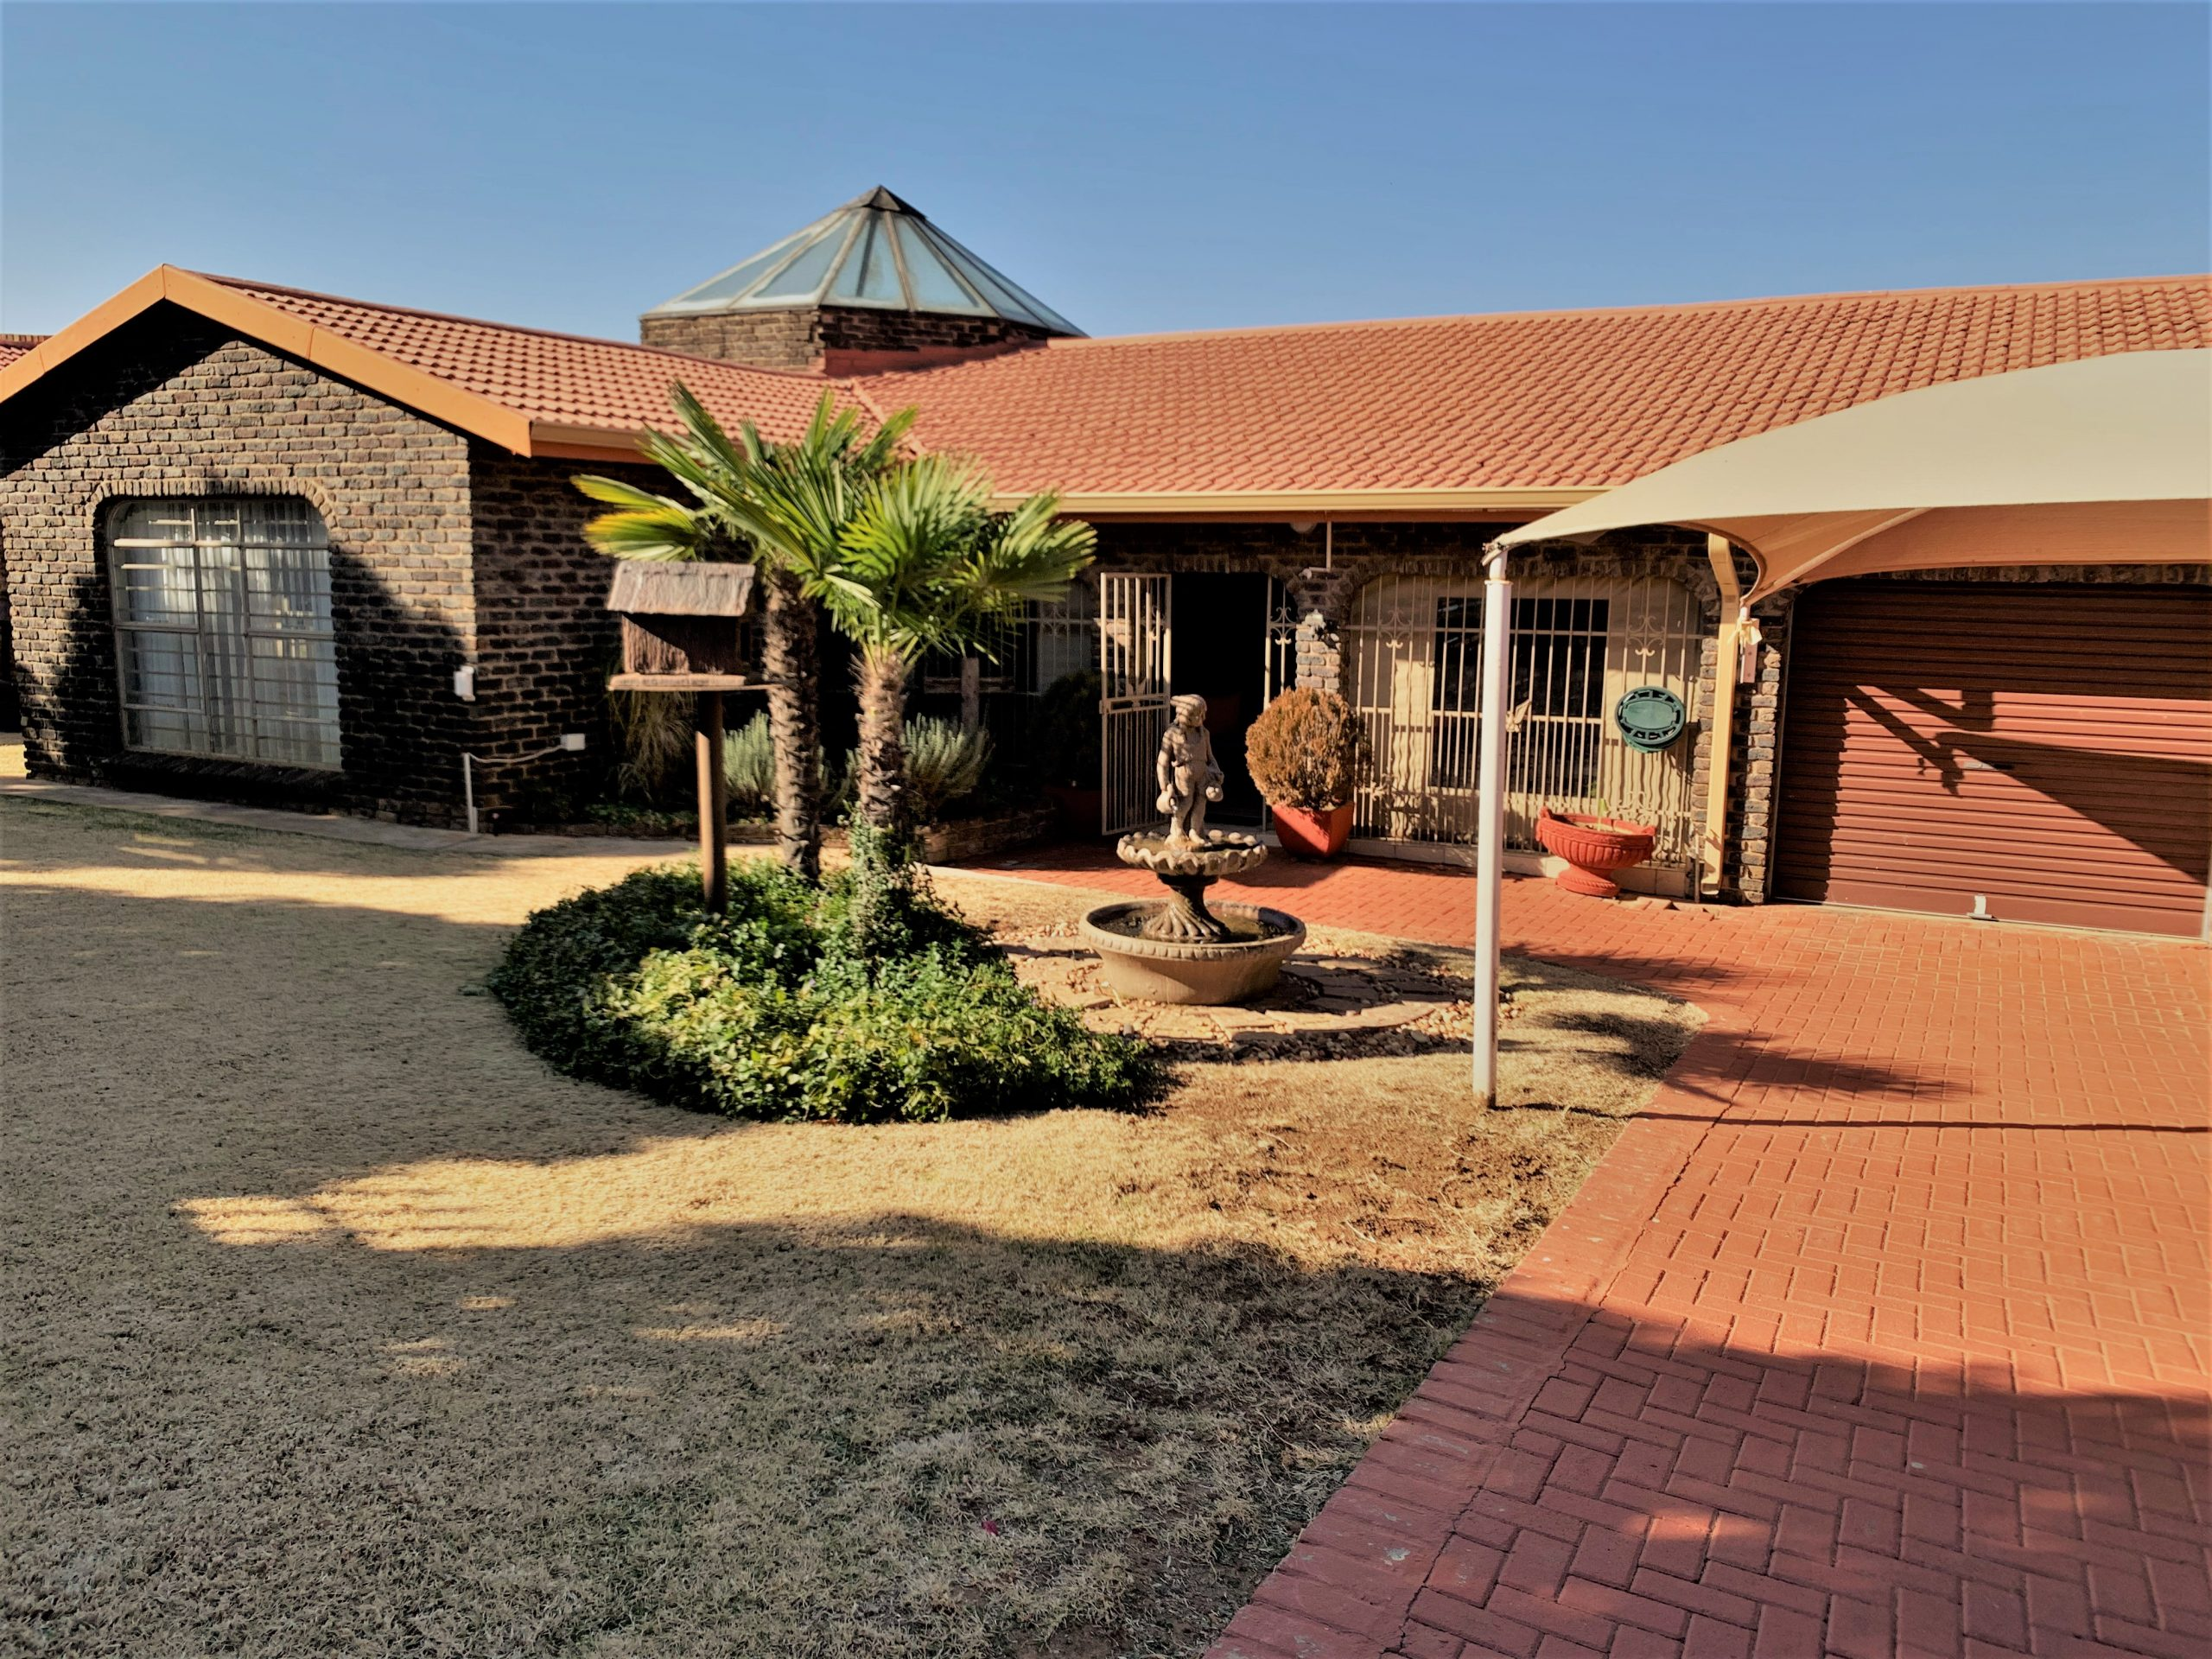 5 Bedroom House for SALE in Fochville